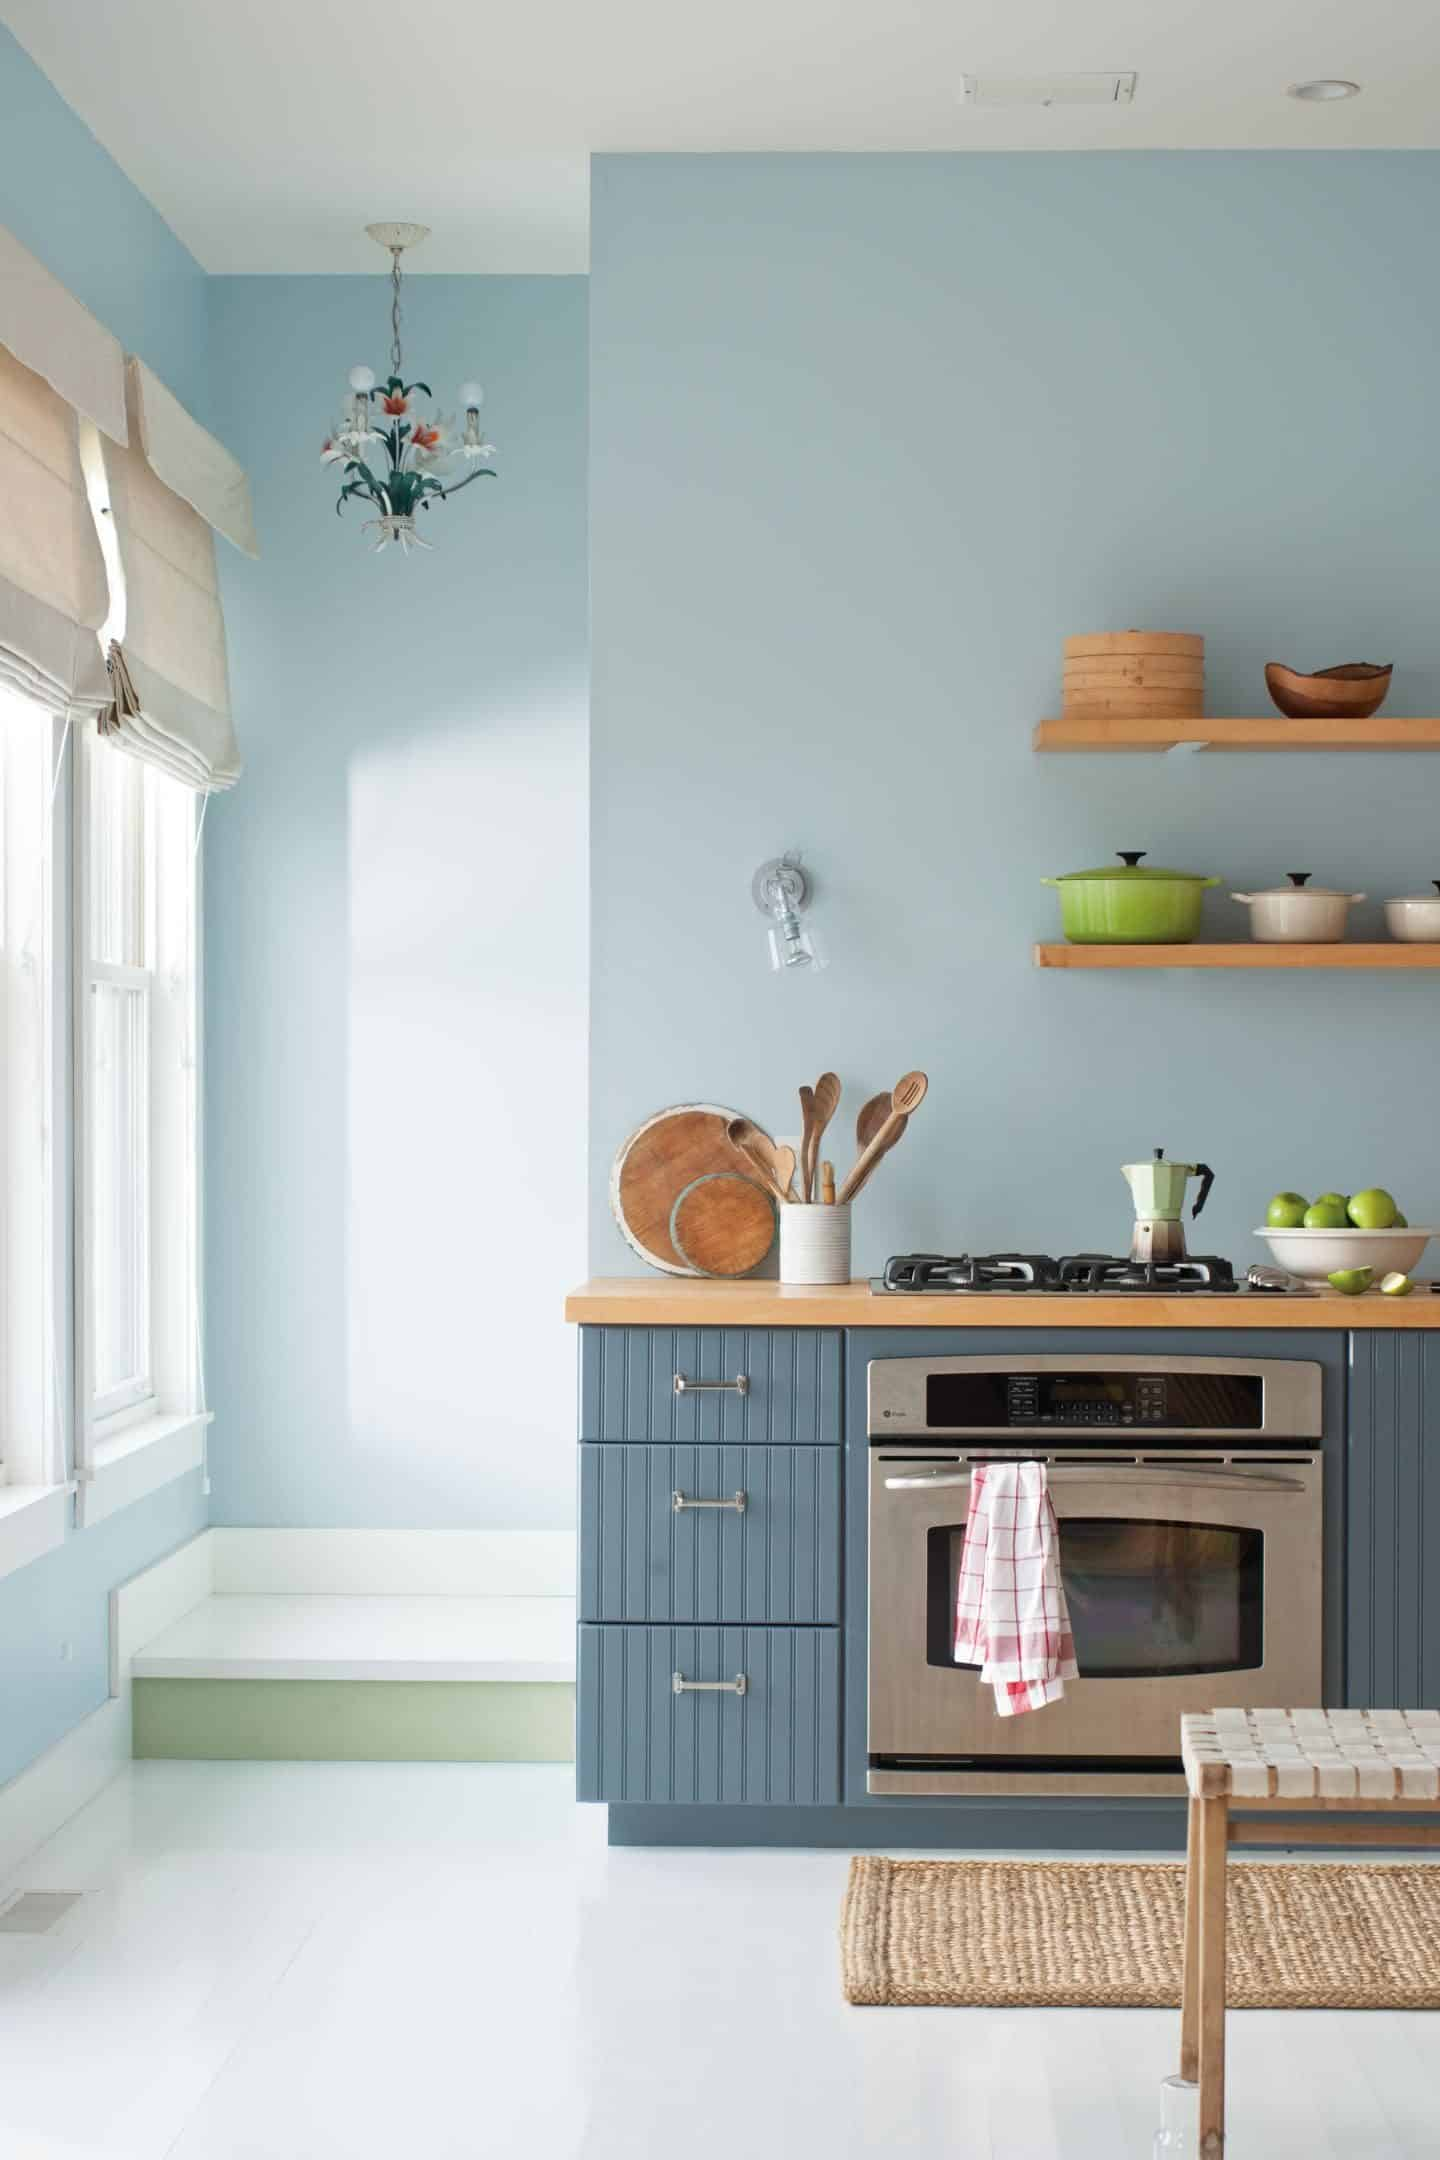 Colourful Kitchen cabinets in Benjamin Moore Normandy Blue